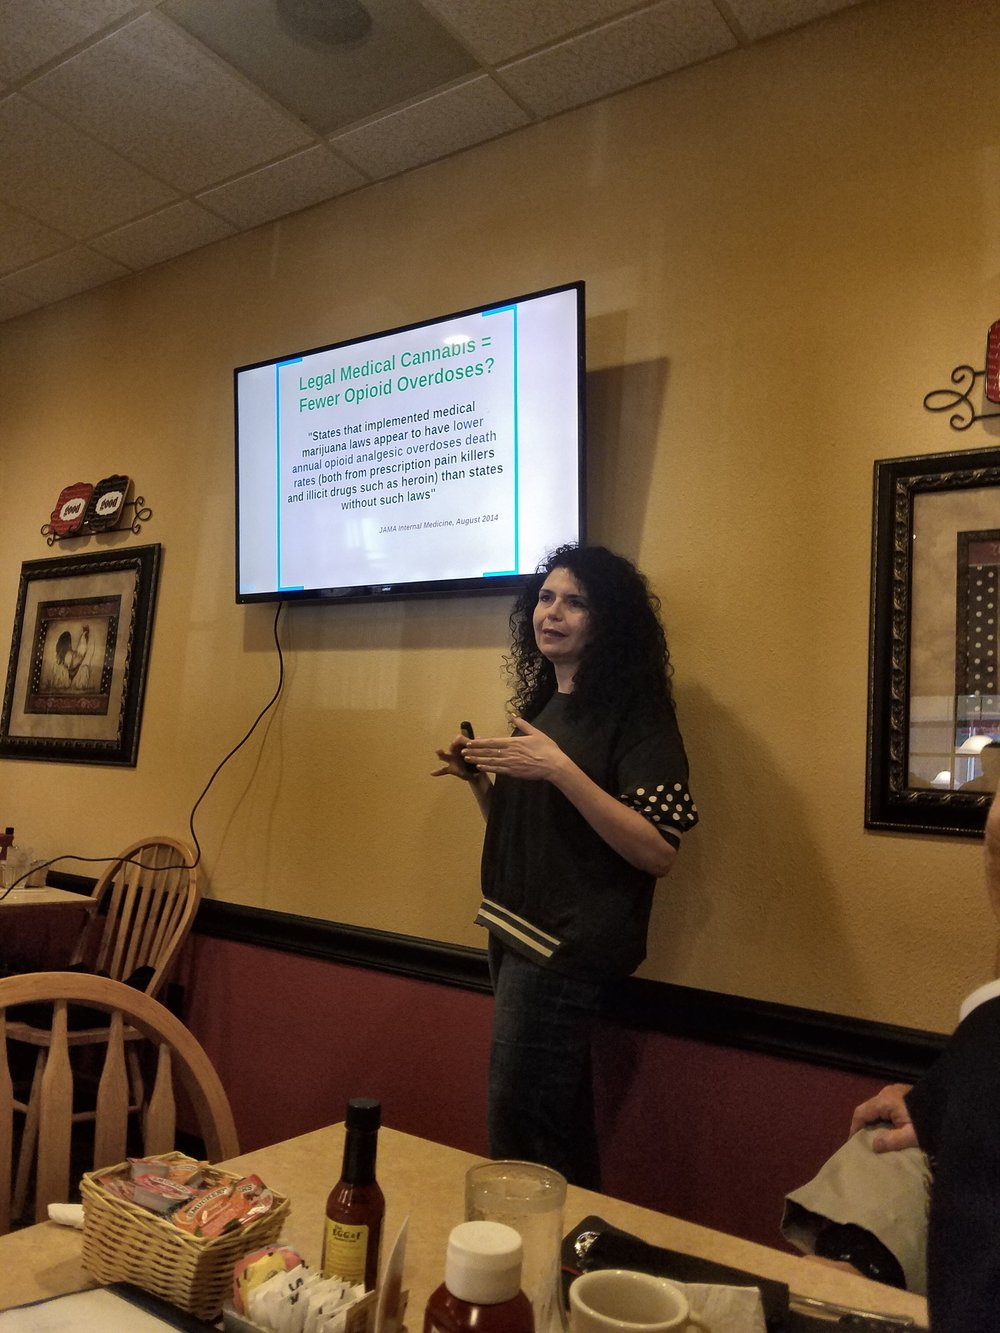 Dr. Sisely explaining how legalized medical cannabis leads to a reduction in opiate overdoses.